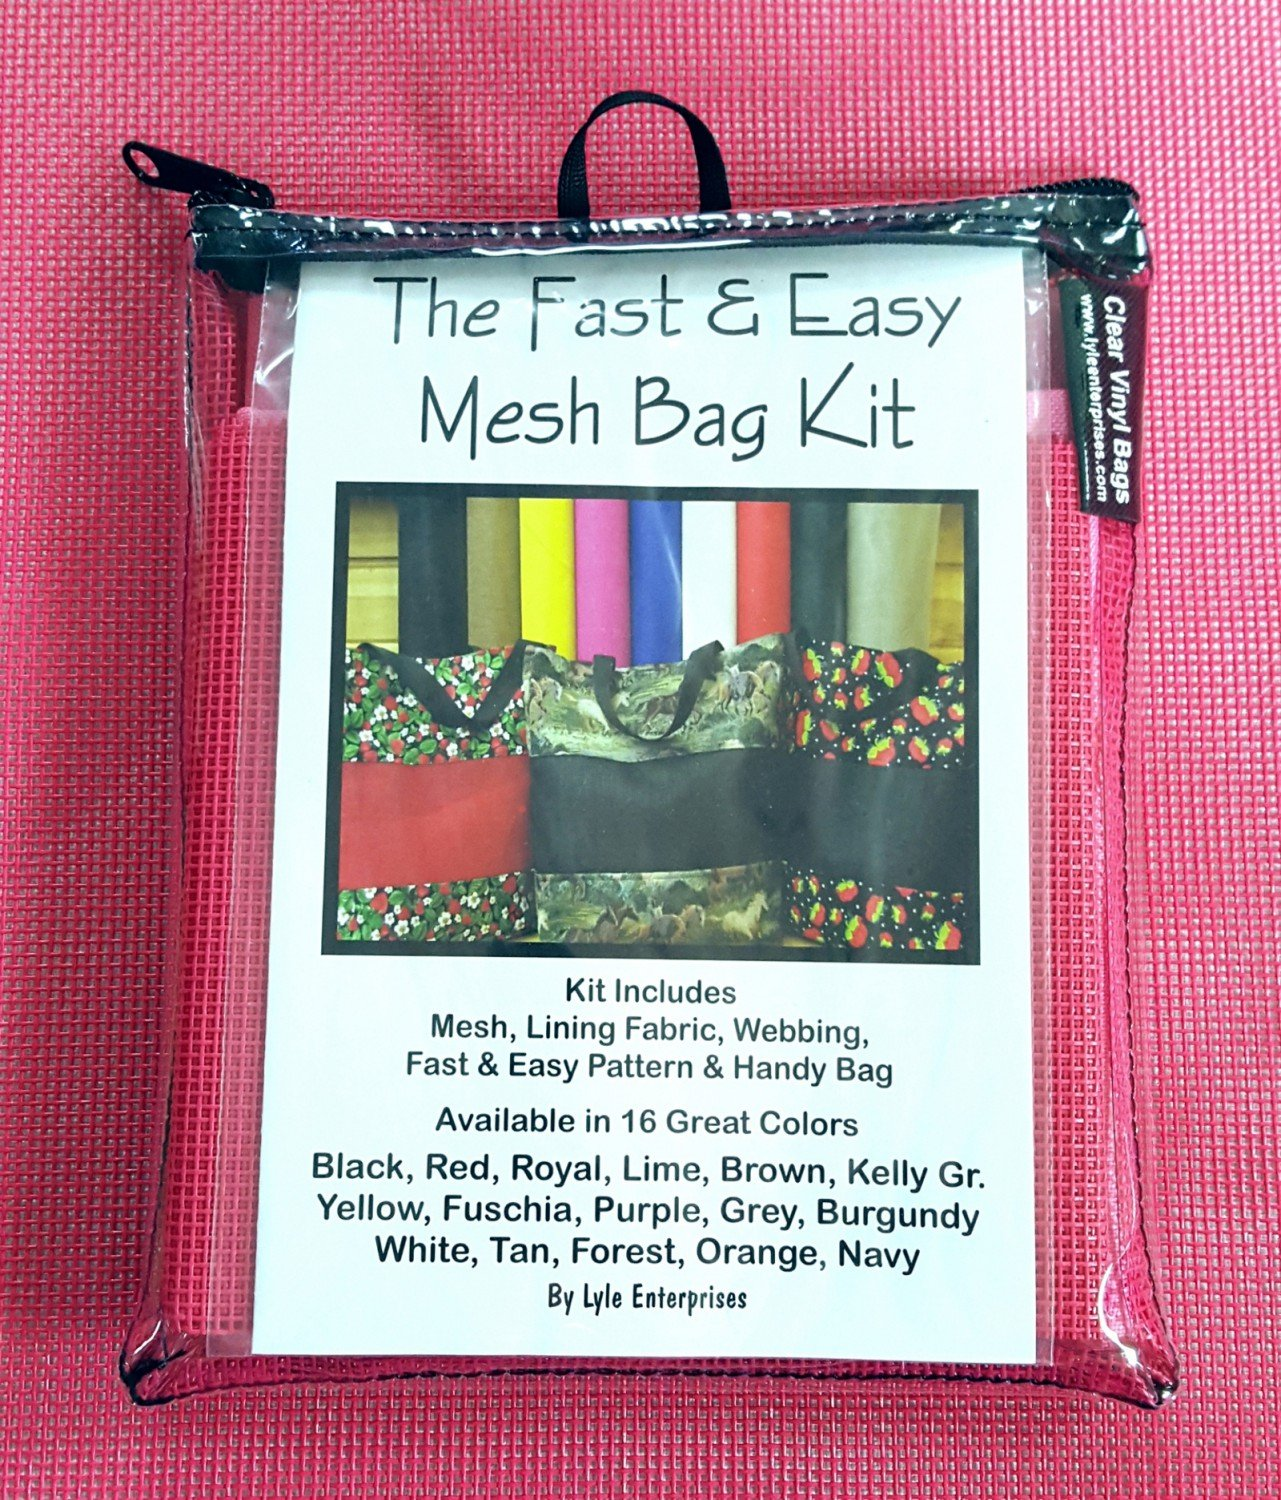 Fuchsia Mesh Bag Kit - MBK-320 - MAY BE RESTOCKED UPON REQUEST